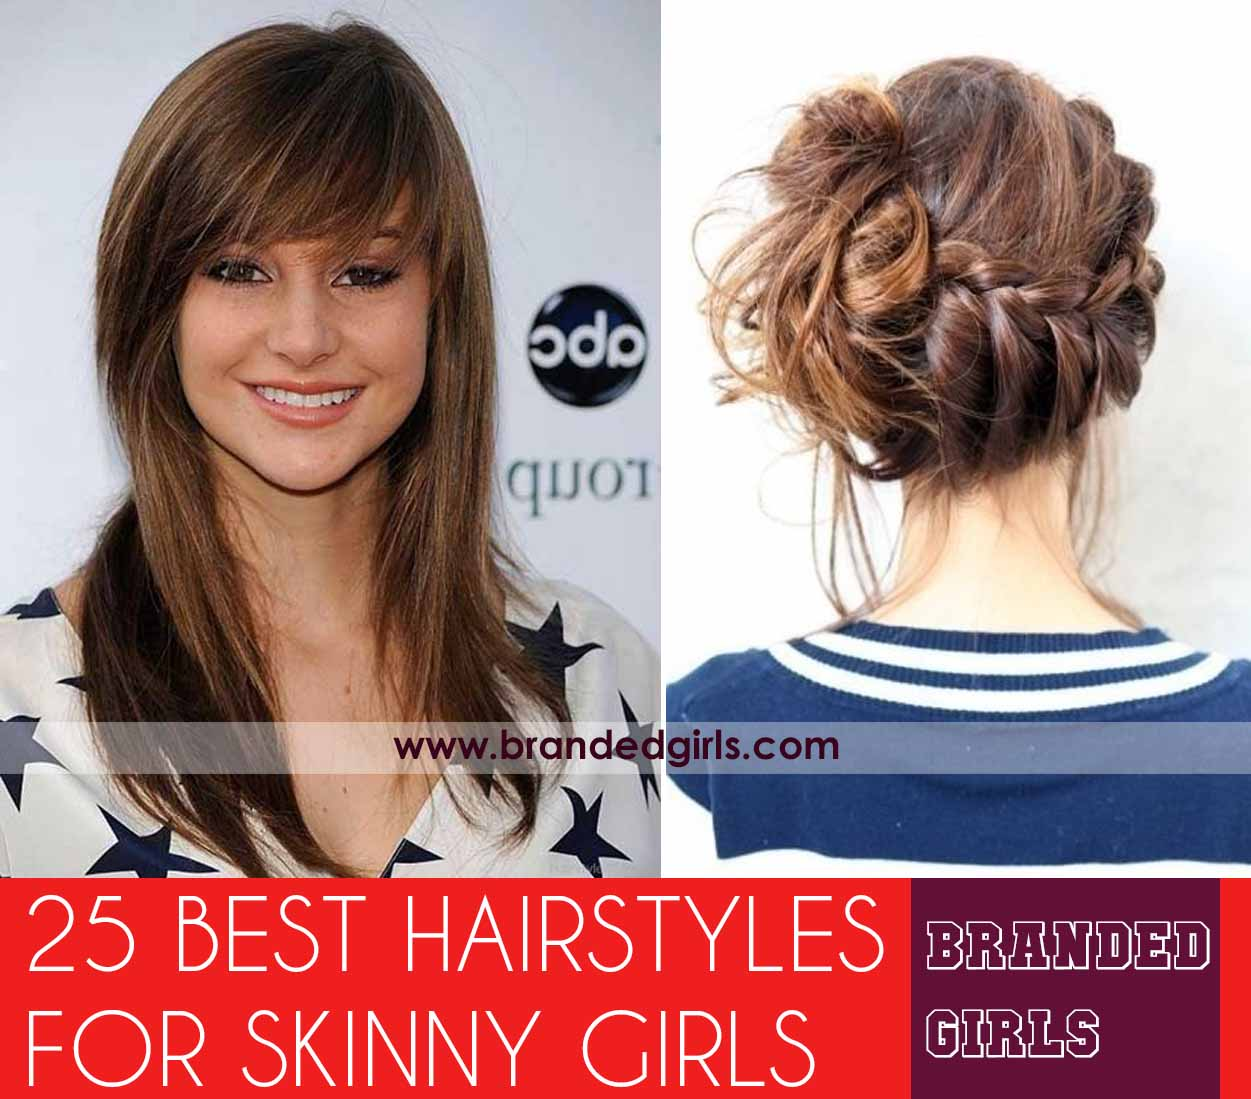 polyvore-sample-17 Skinny Girl Hair Looks - 25 Best Hairstyles for Skinny Girls